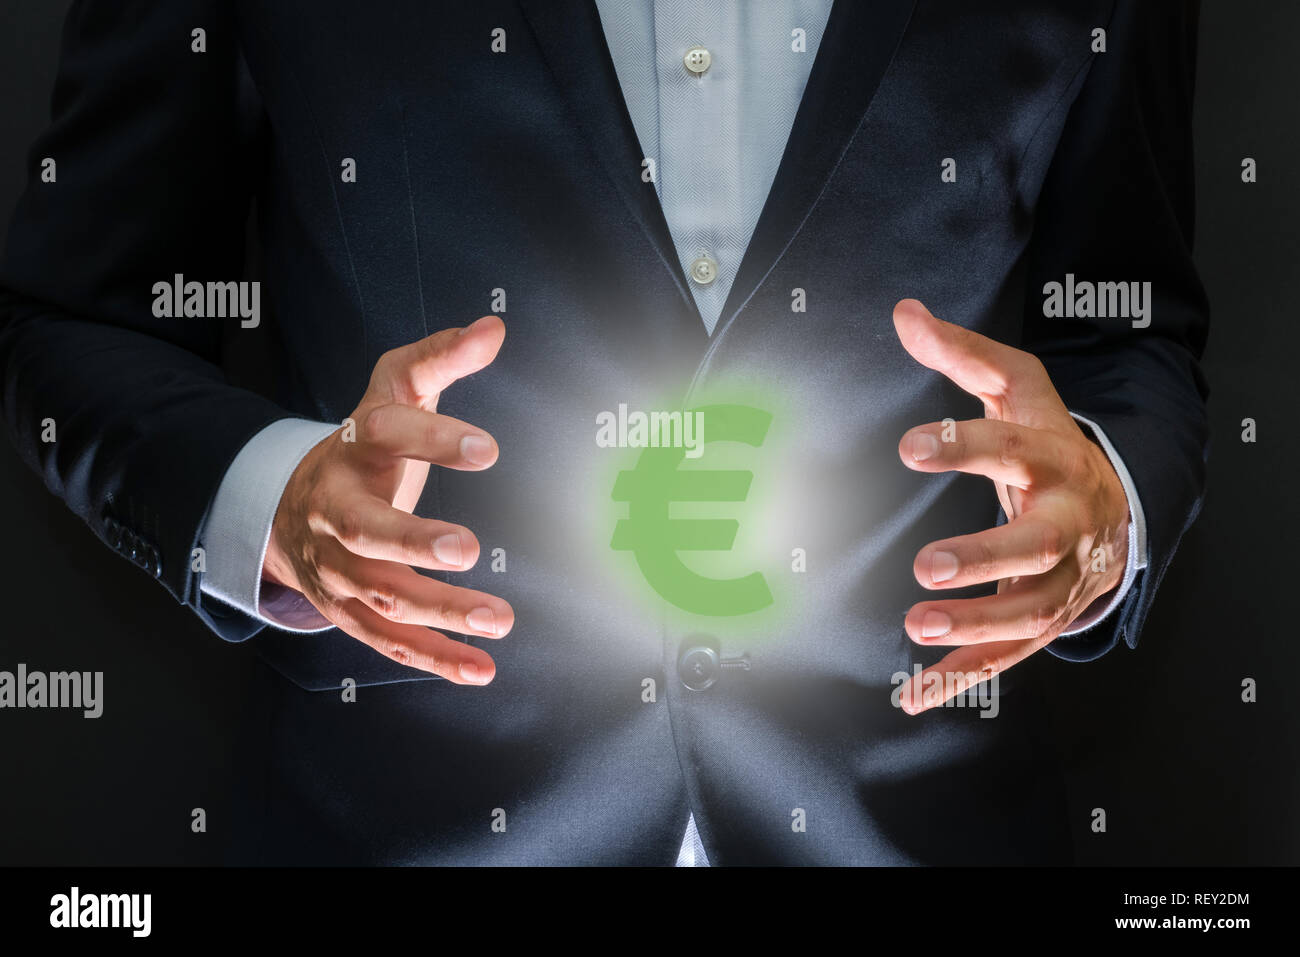 Controlling money concept. Currency symbol - euro sign between human hands. Money making and wealth - Stock Image